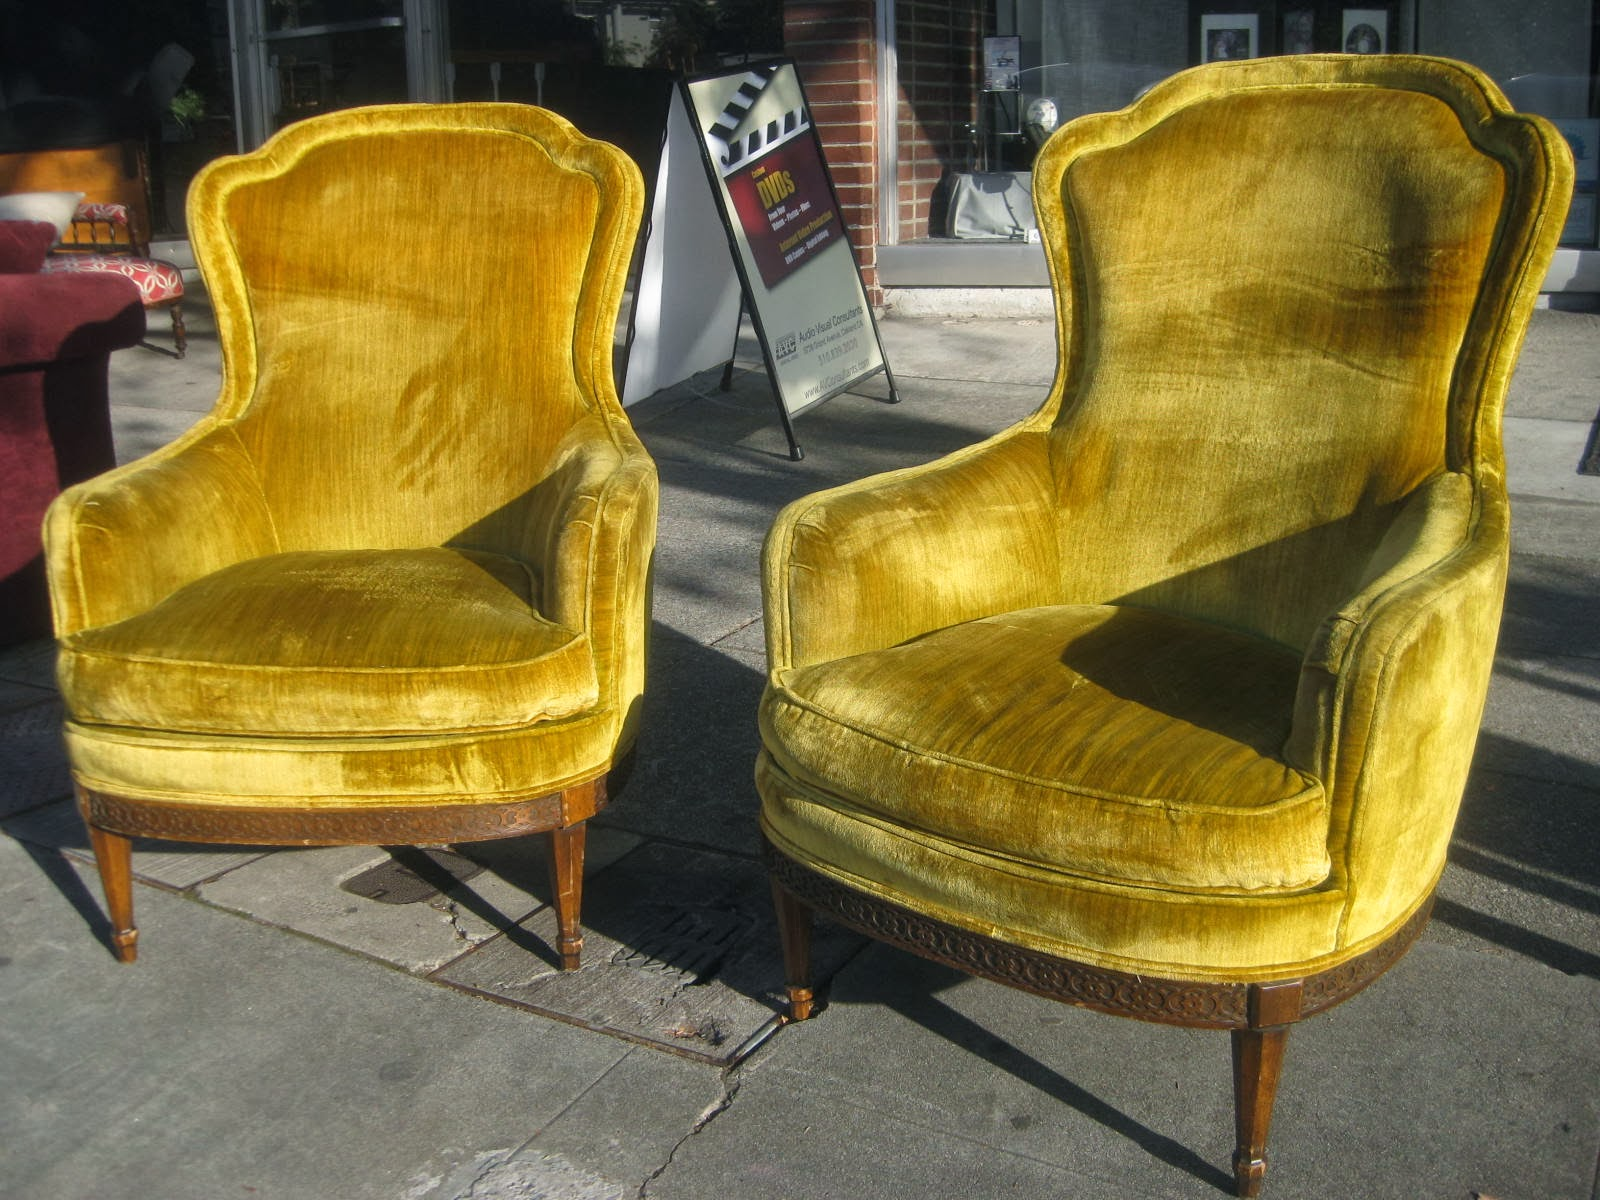 Gold Velvet Chair The Gripper Cushion Uhuru Furniture And Collectibles Sold Pair Of Golden